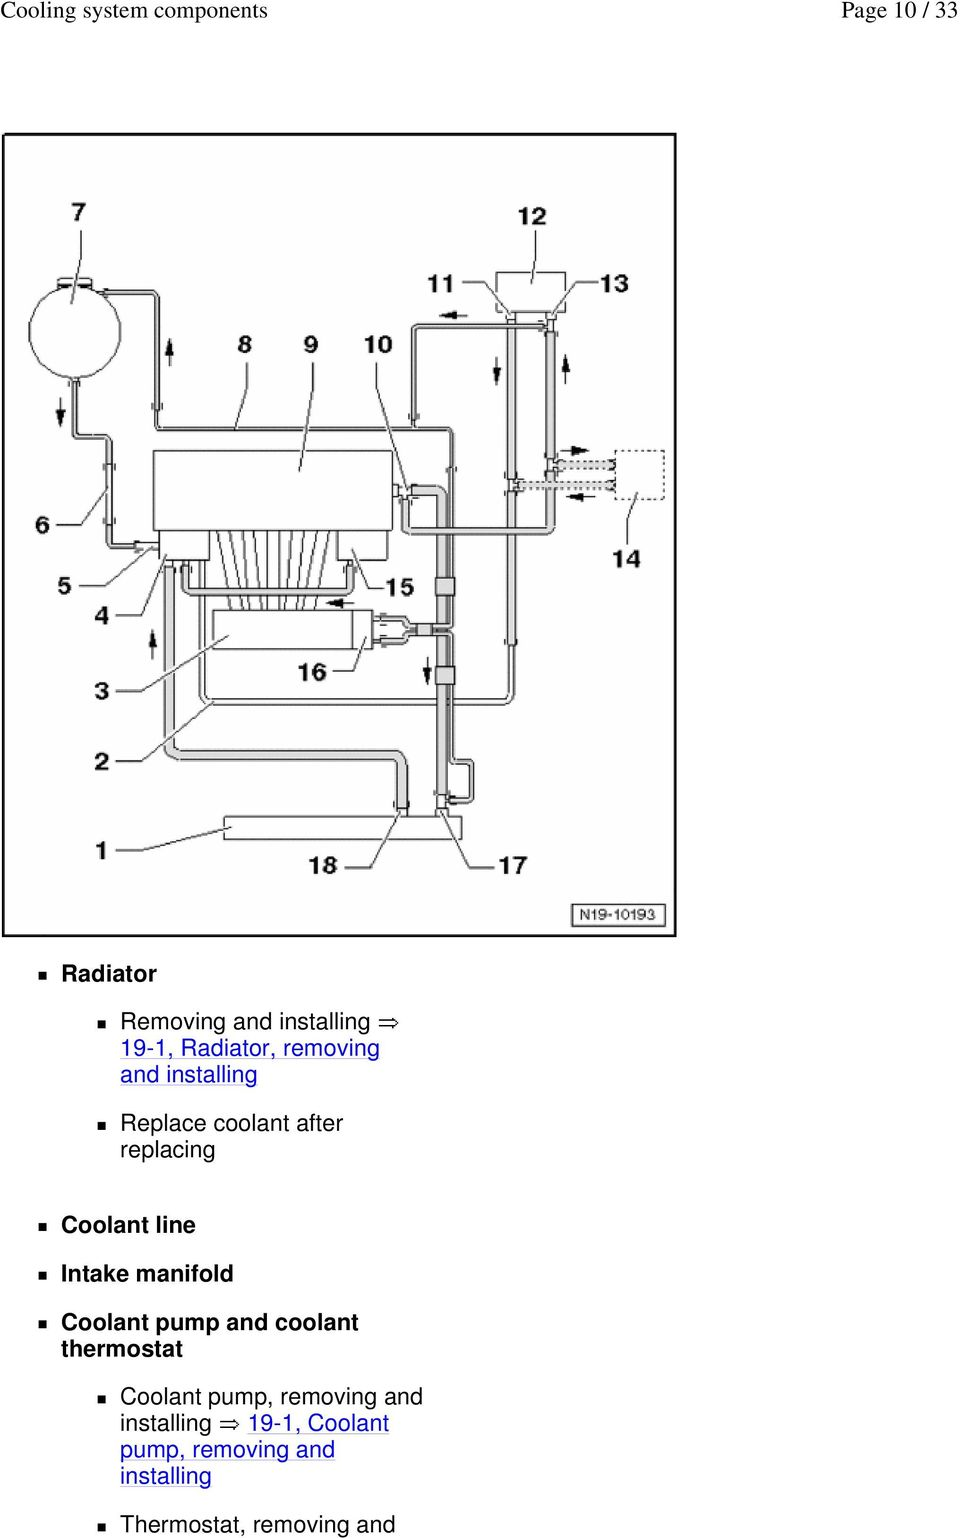 hight resolution of manifold coolant pump and coolant thermostat coolant pump removing and